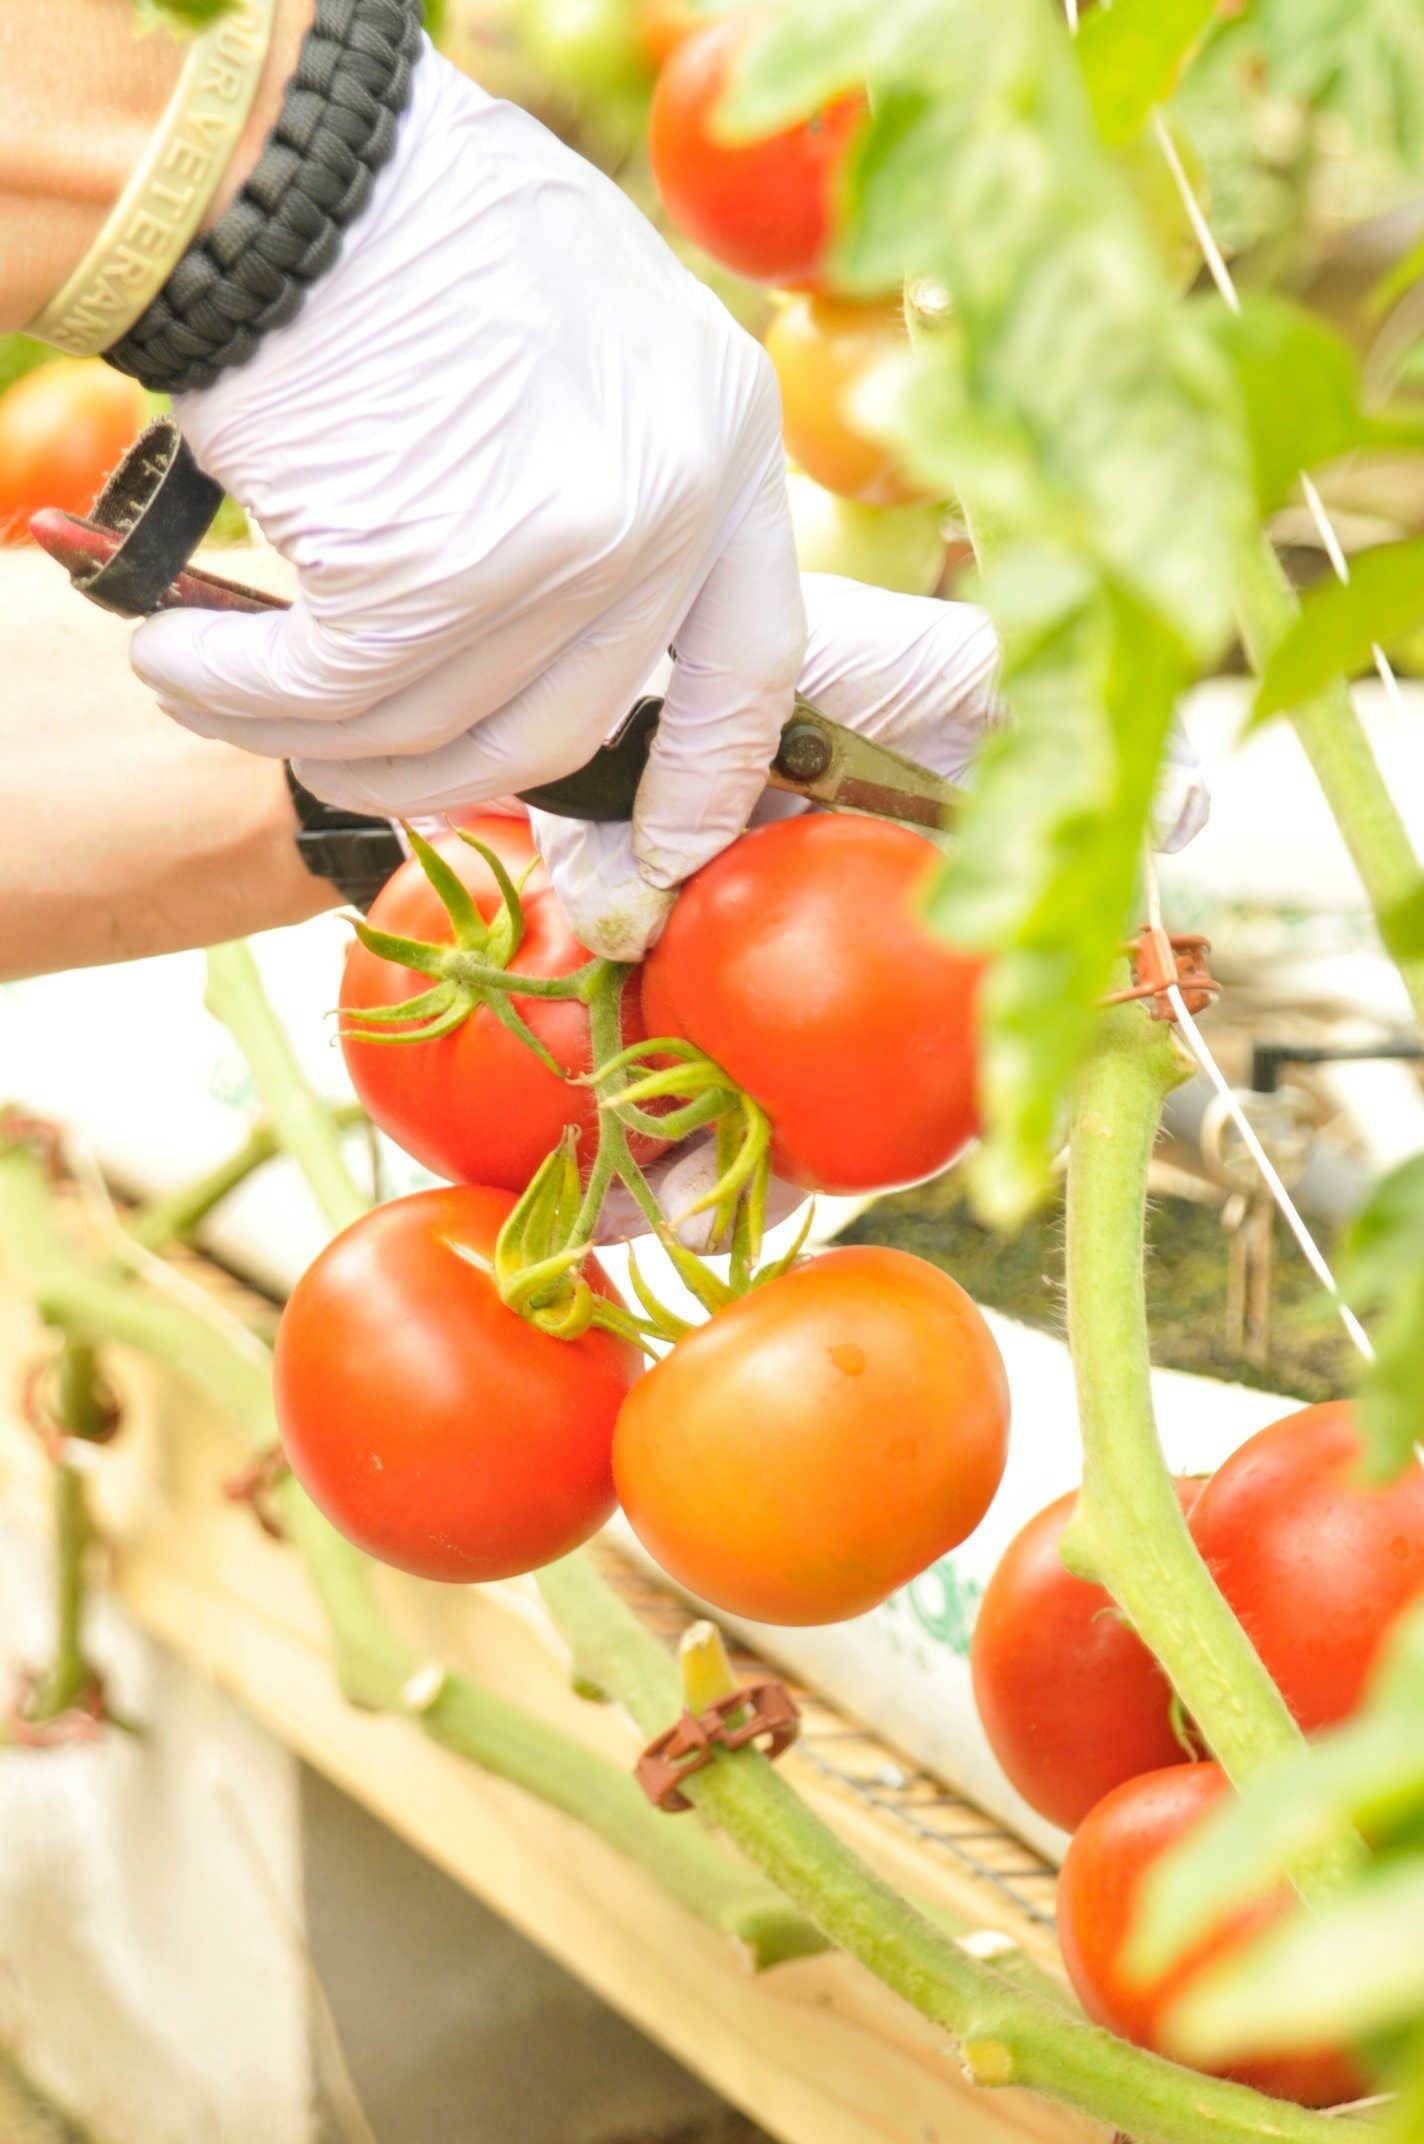 Harvesting delicious tomatoes